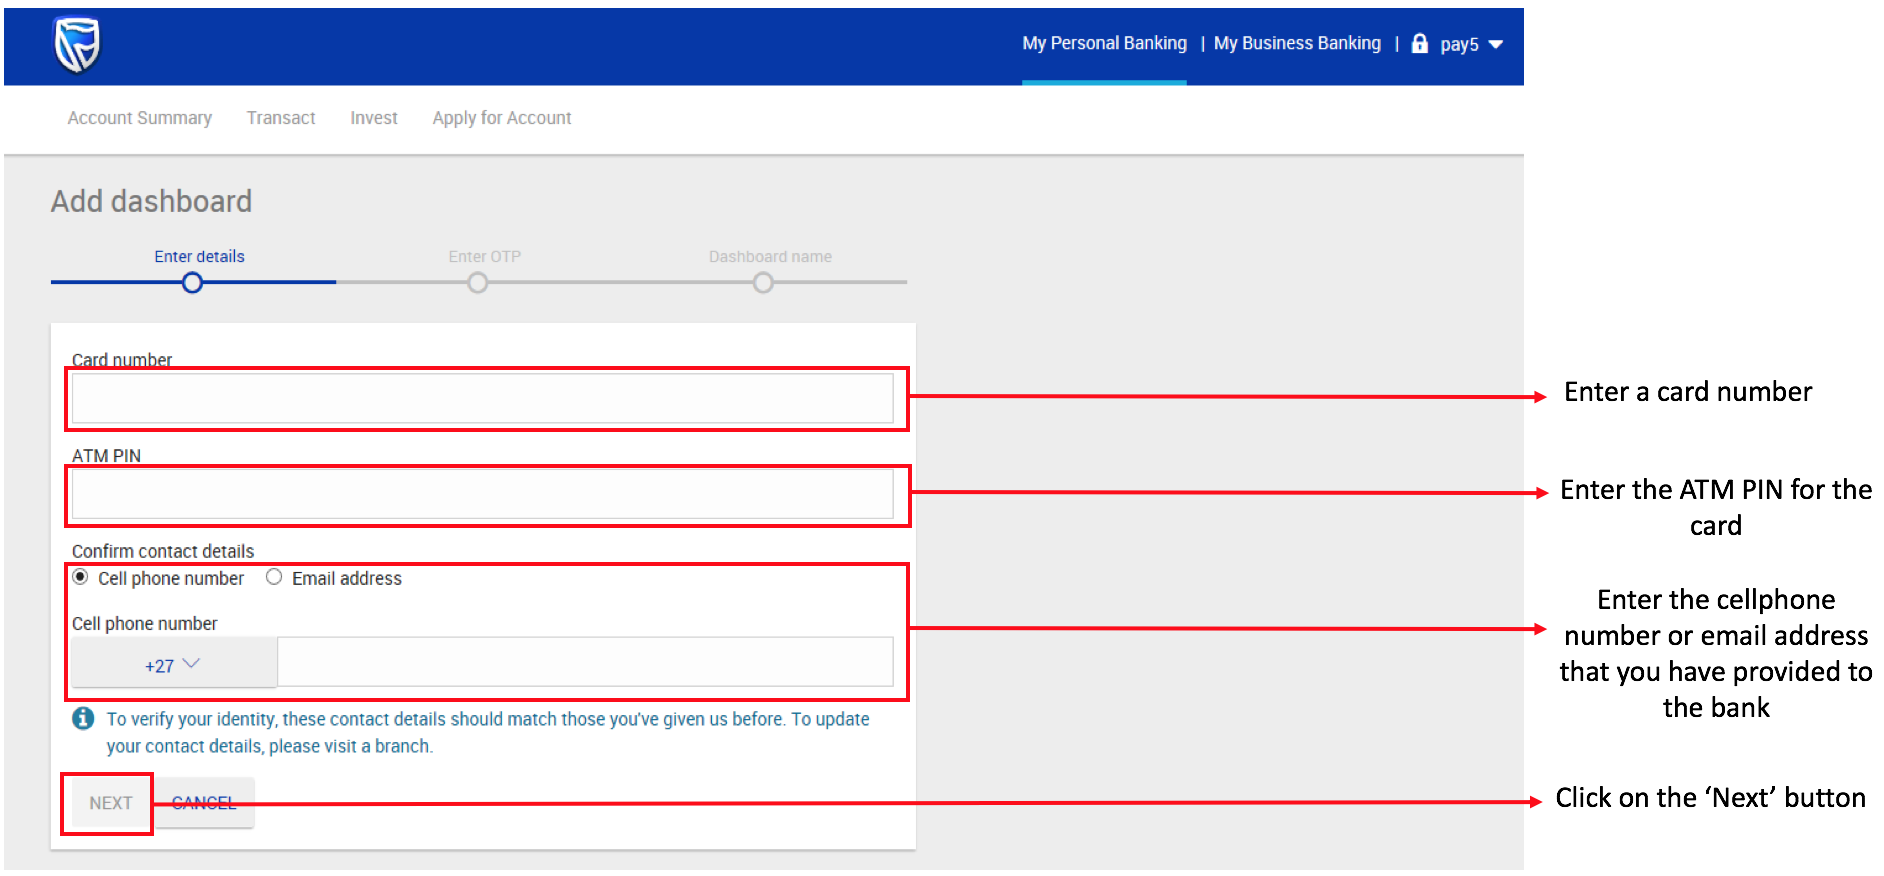 How To Add A New Dashboard On New Online Banking